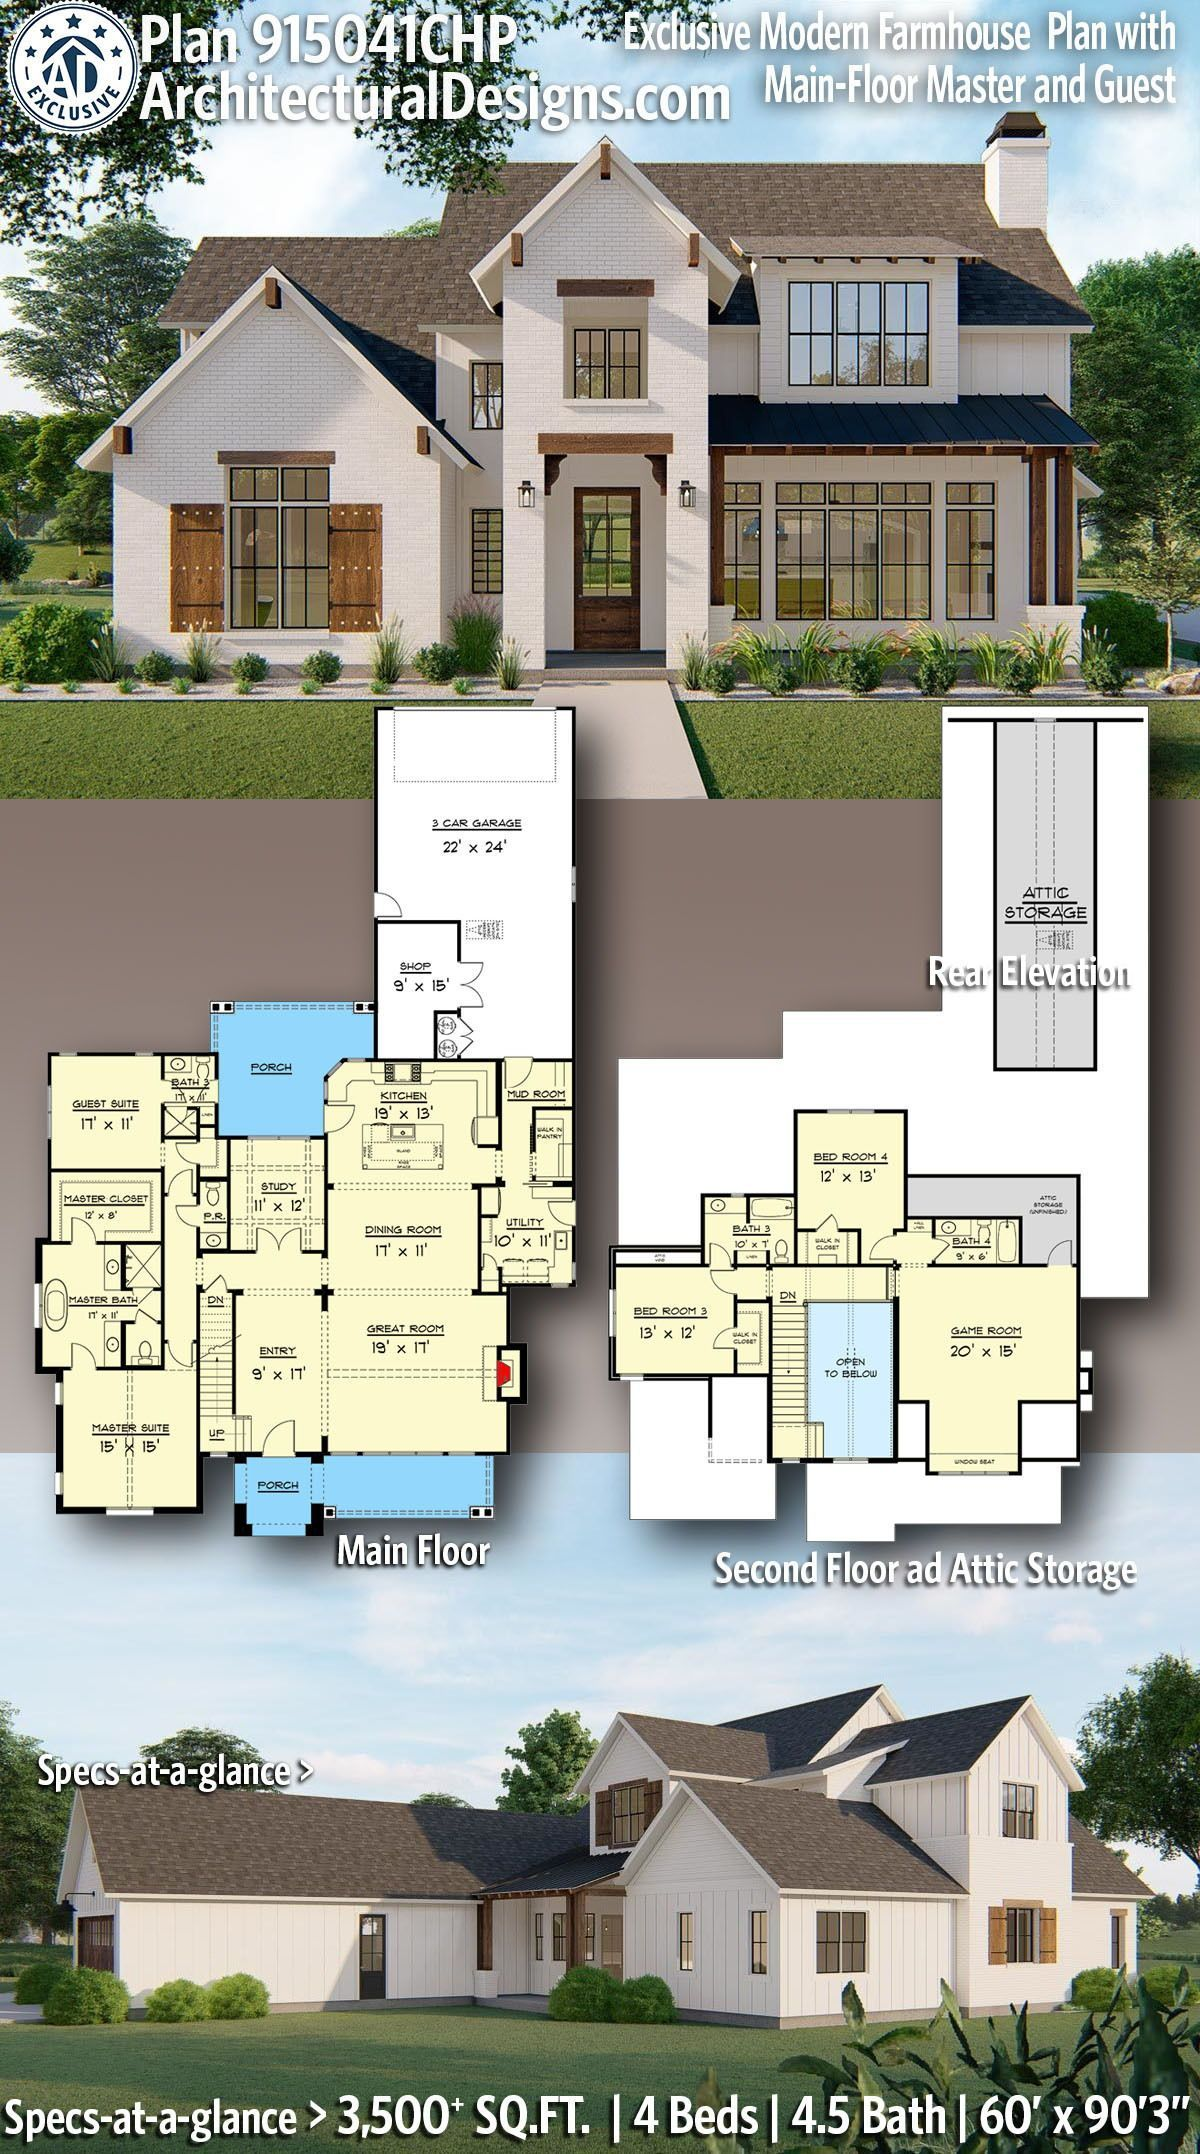 4 Bed Farmhouse House Plan CHP